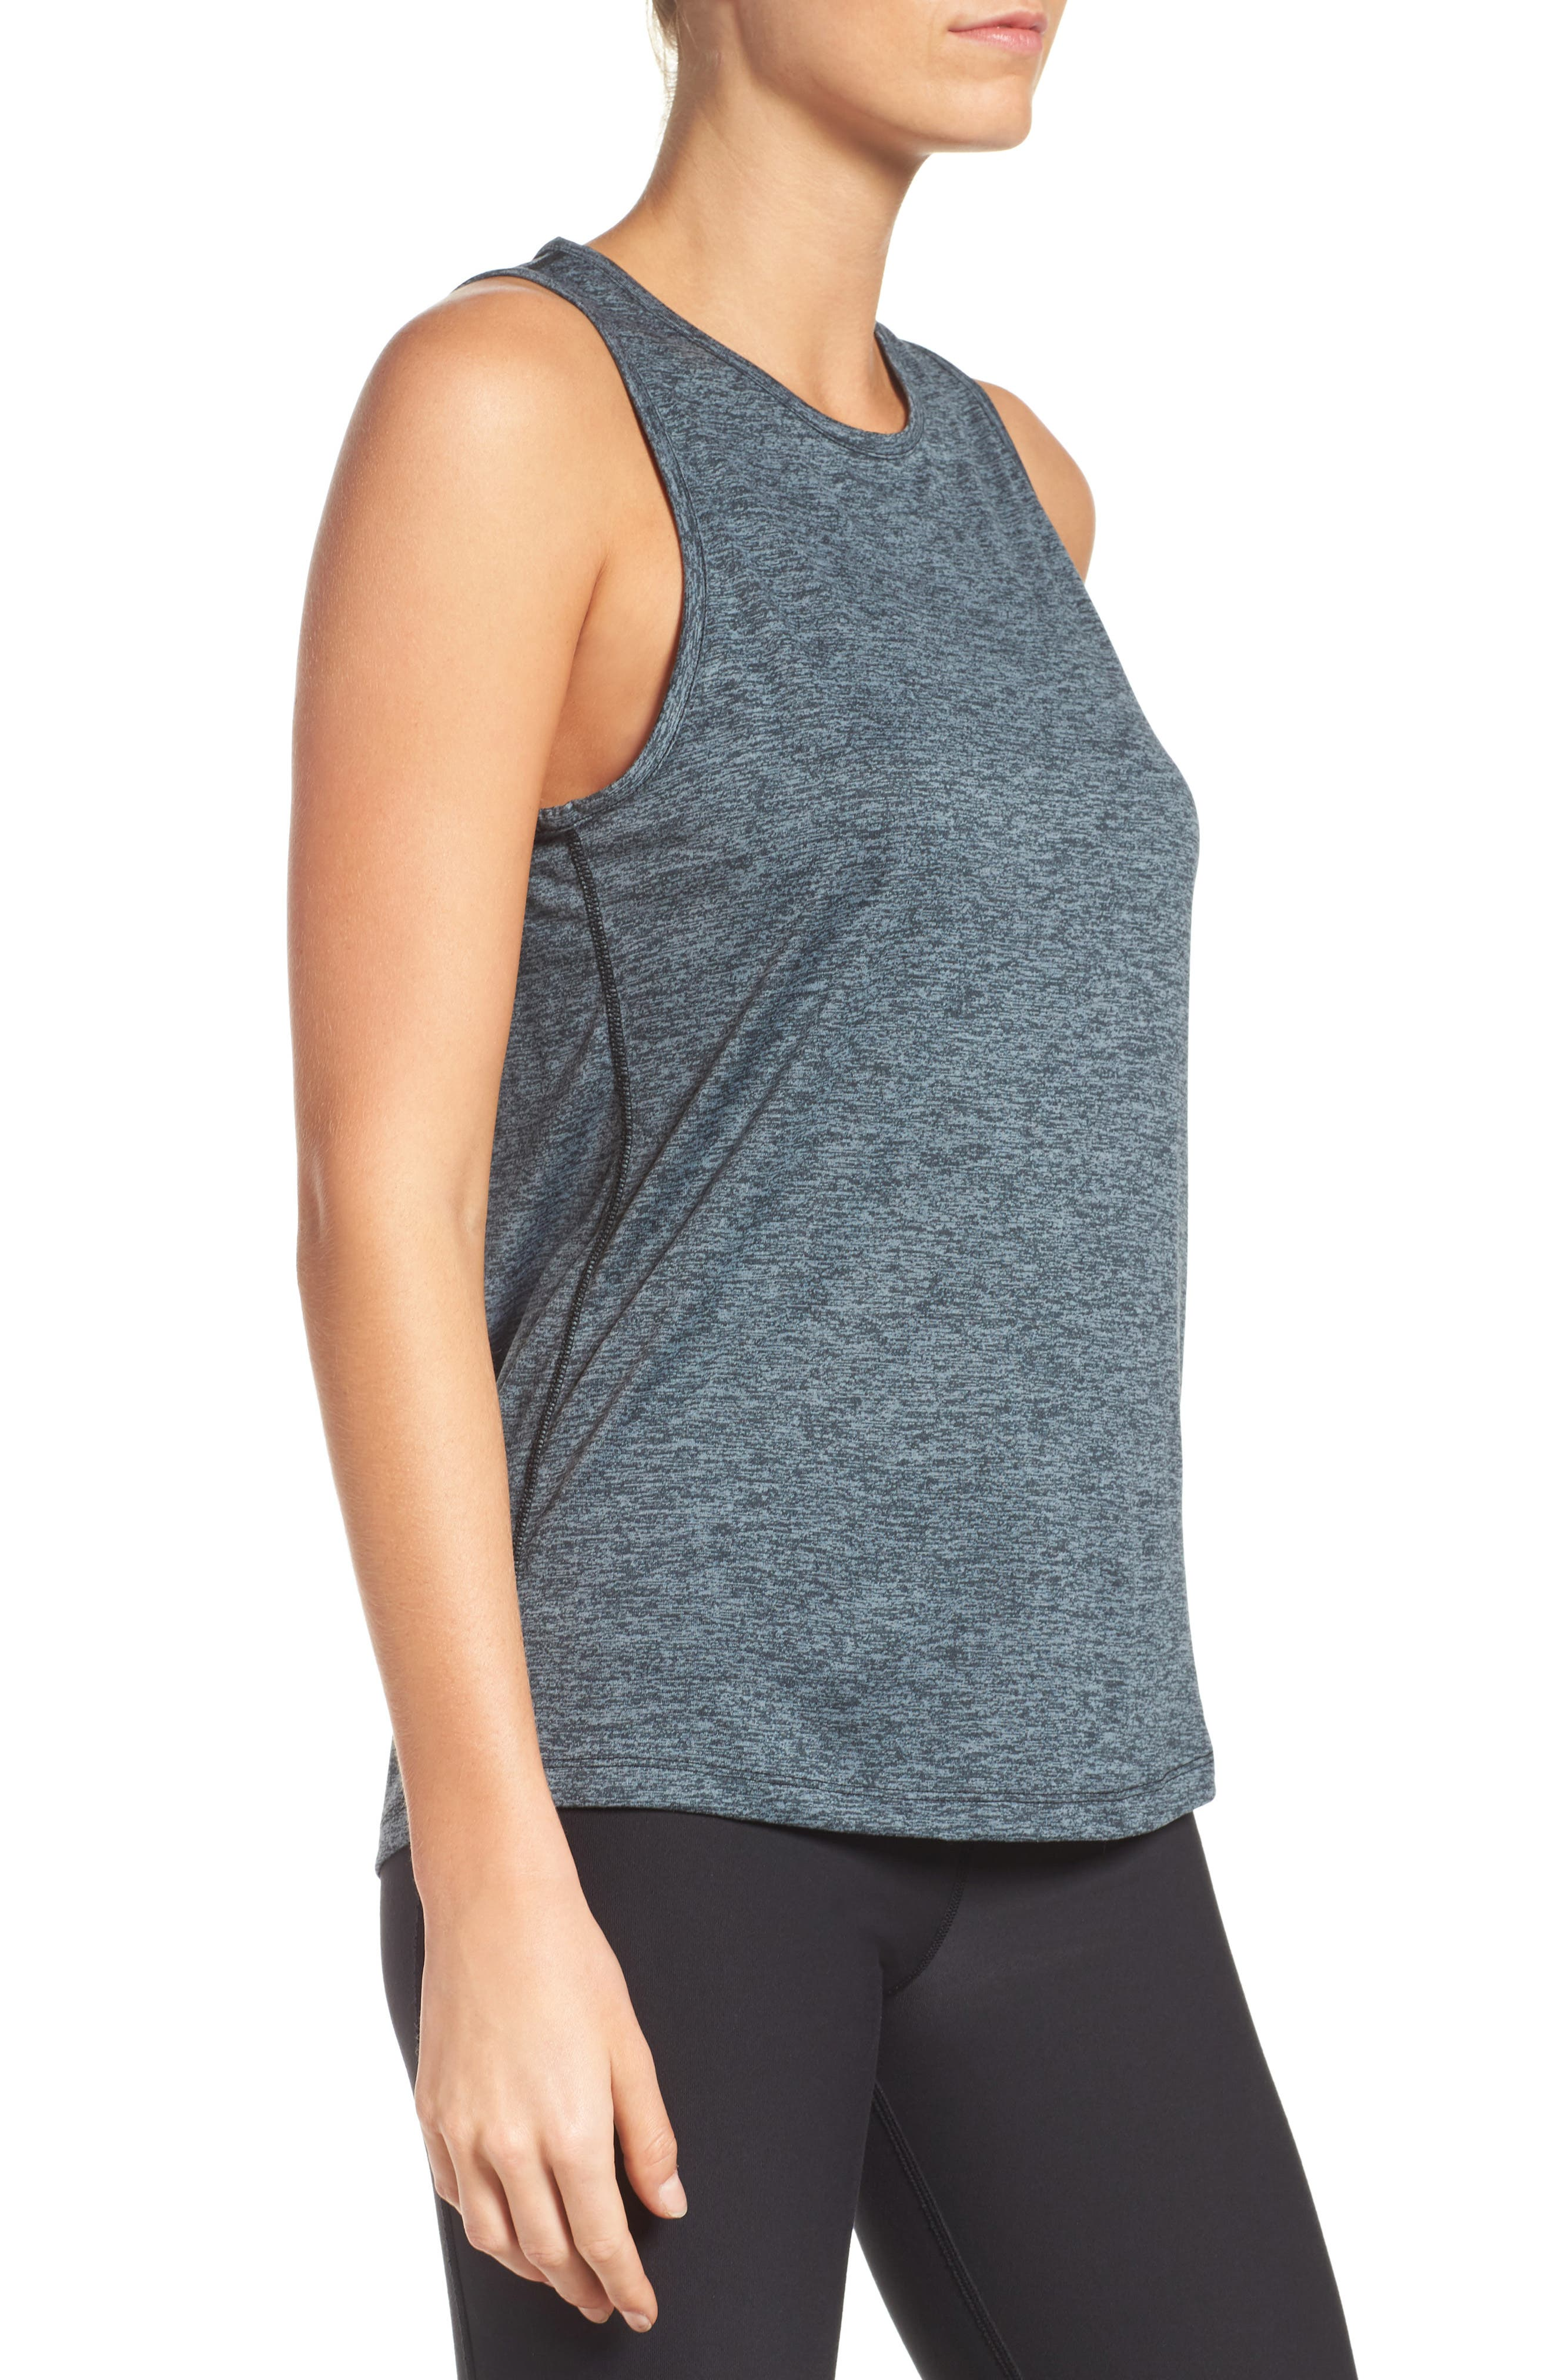 Dry Training Tank,                             Alternate thumbnail 3, color,                             BLACK/ HEATHER/ COOL GREY